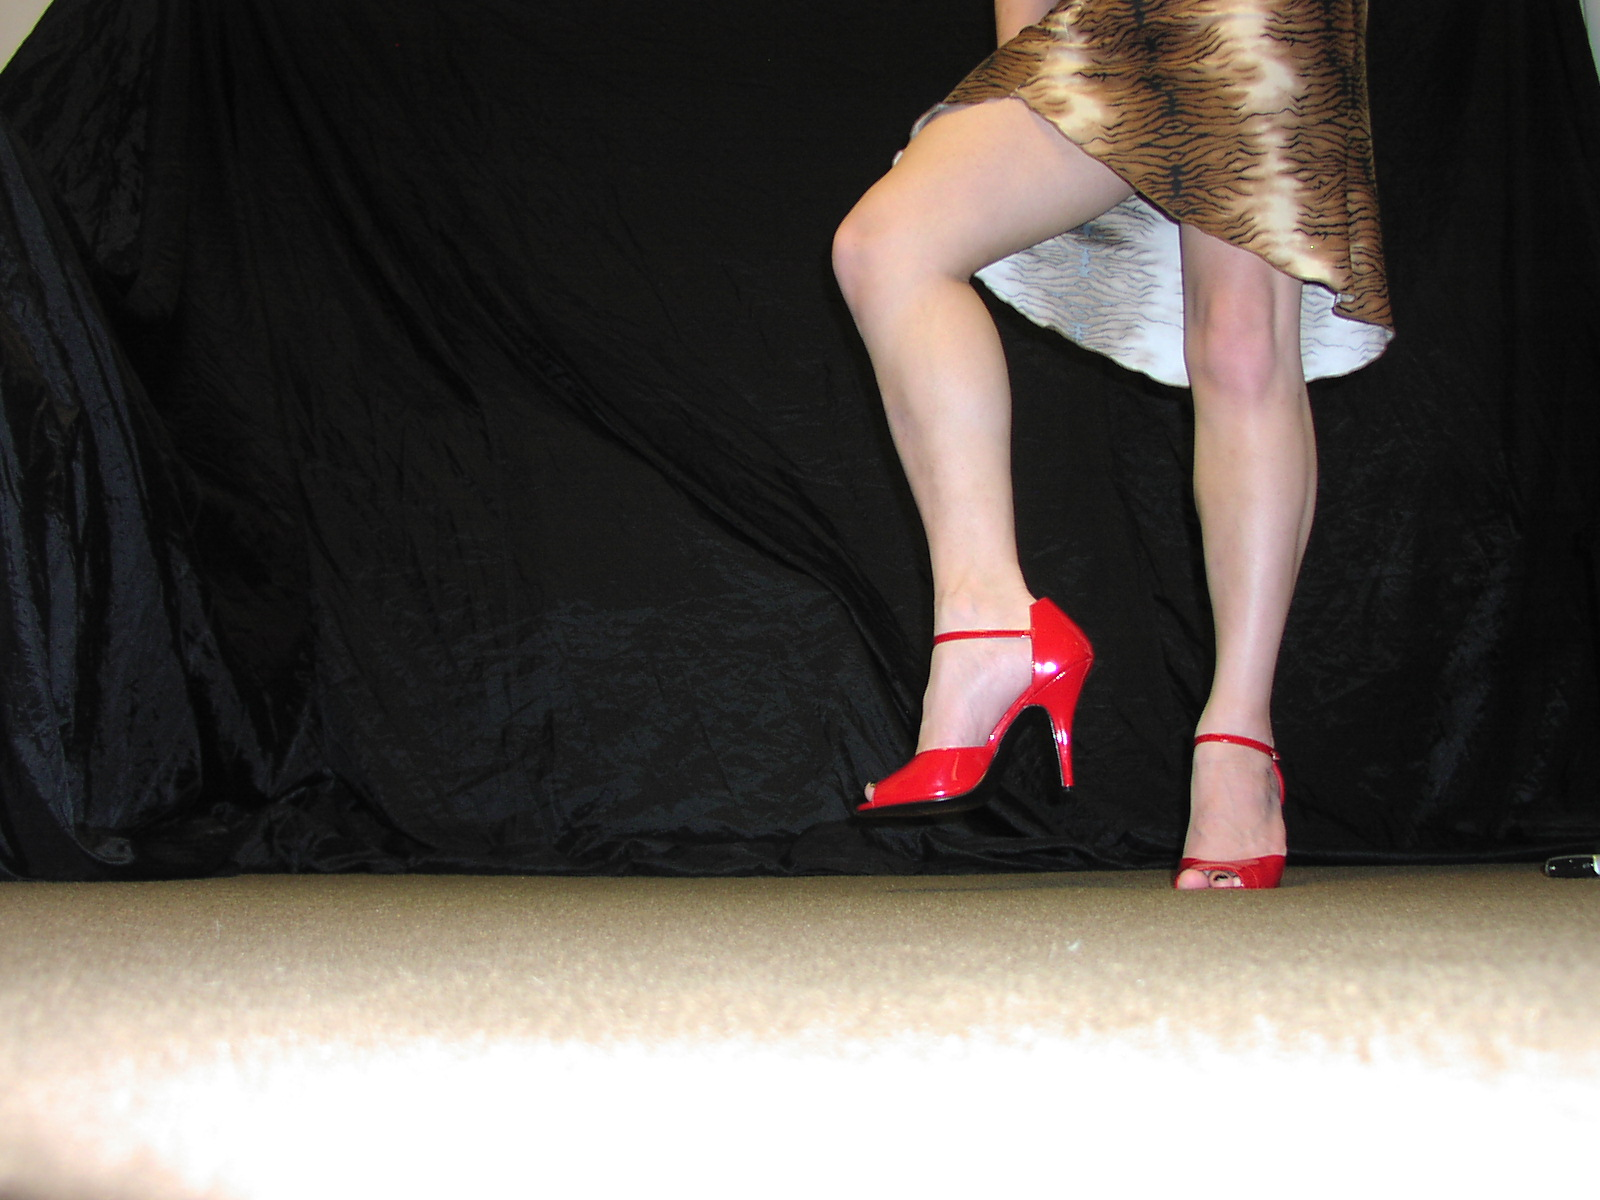 My new red heels which I love.